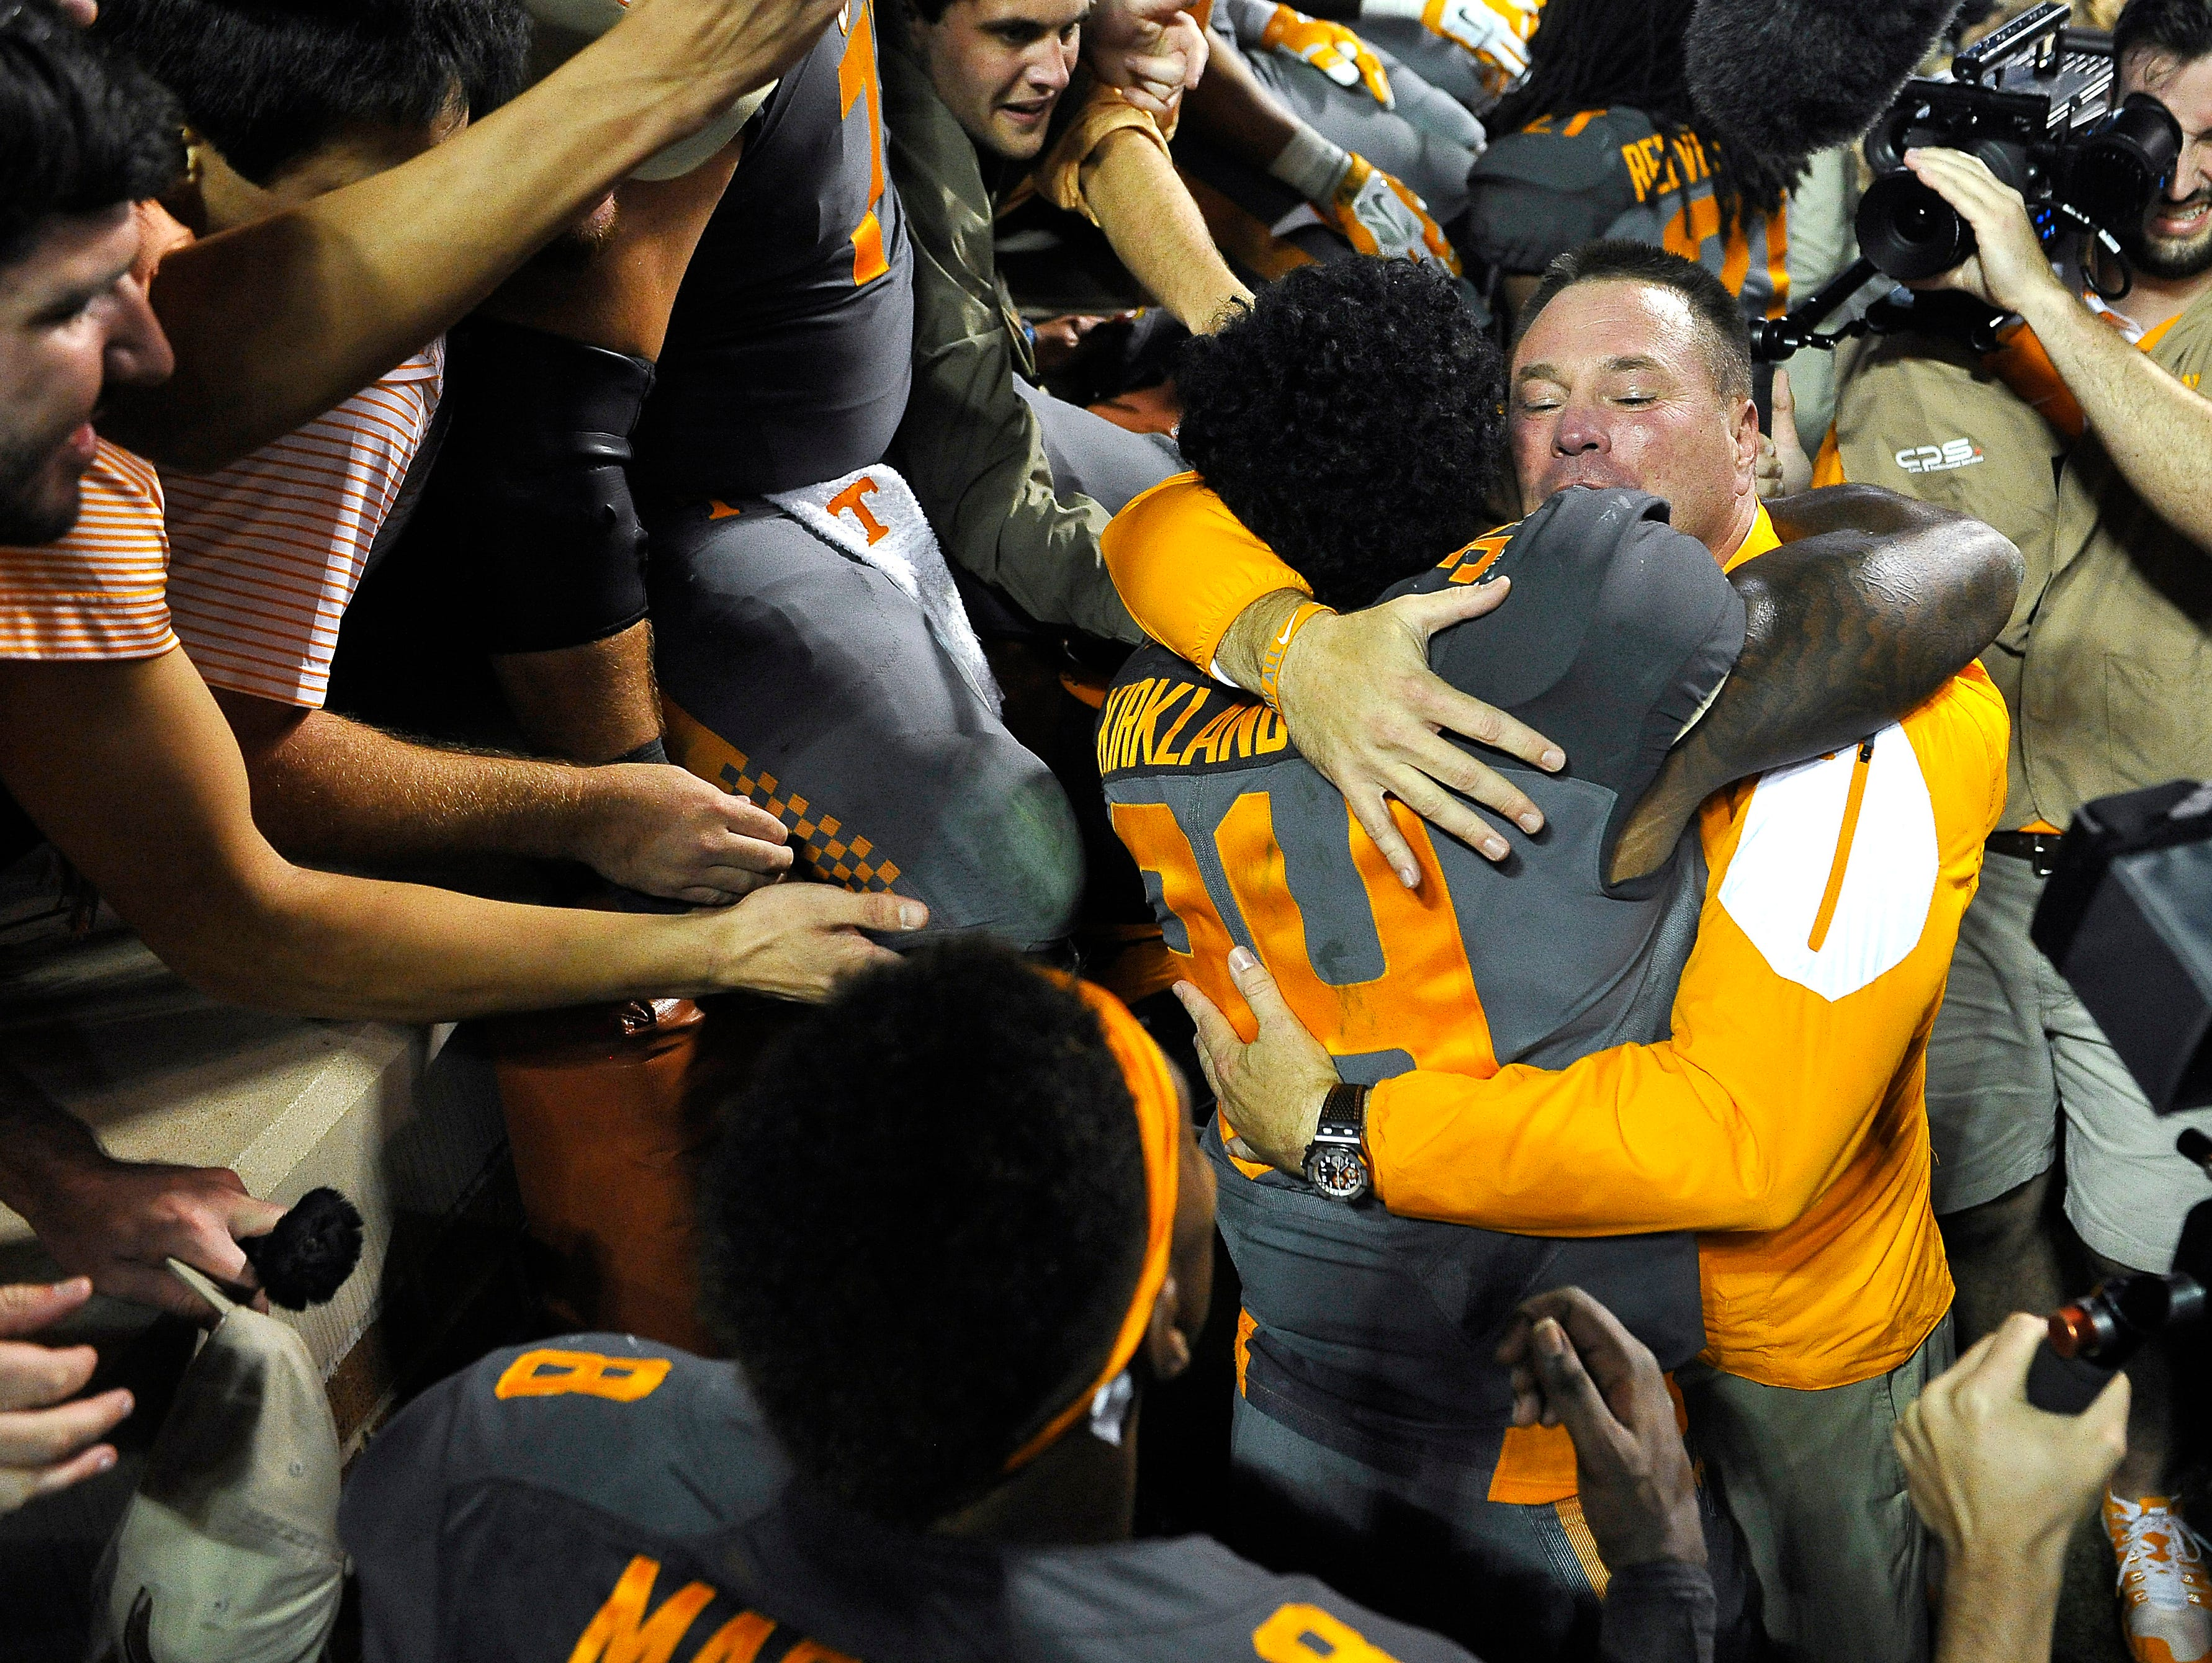 Tennessee coach Butch Jones hugs linebacker Darrin Kirkland Jr. (34) after the University of Tennessee beat Georgia 38-31 Saturday Oct. 10, 2015, in Knoxville, Tenn.